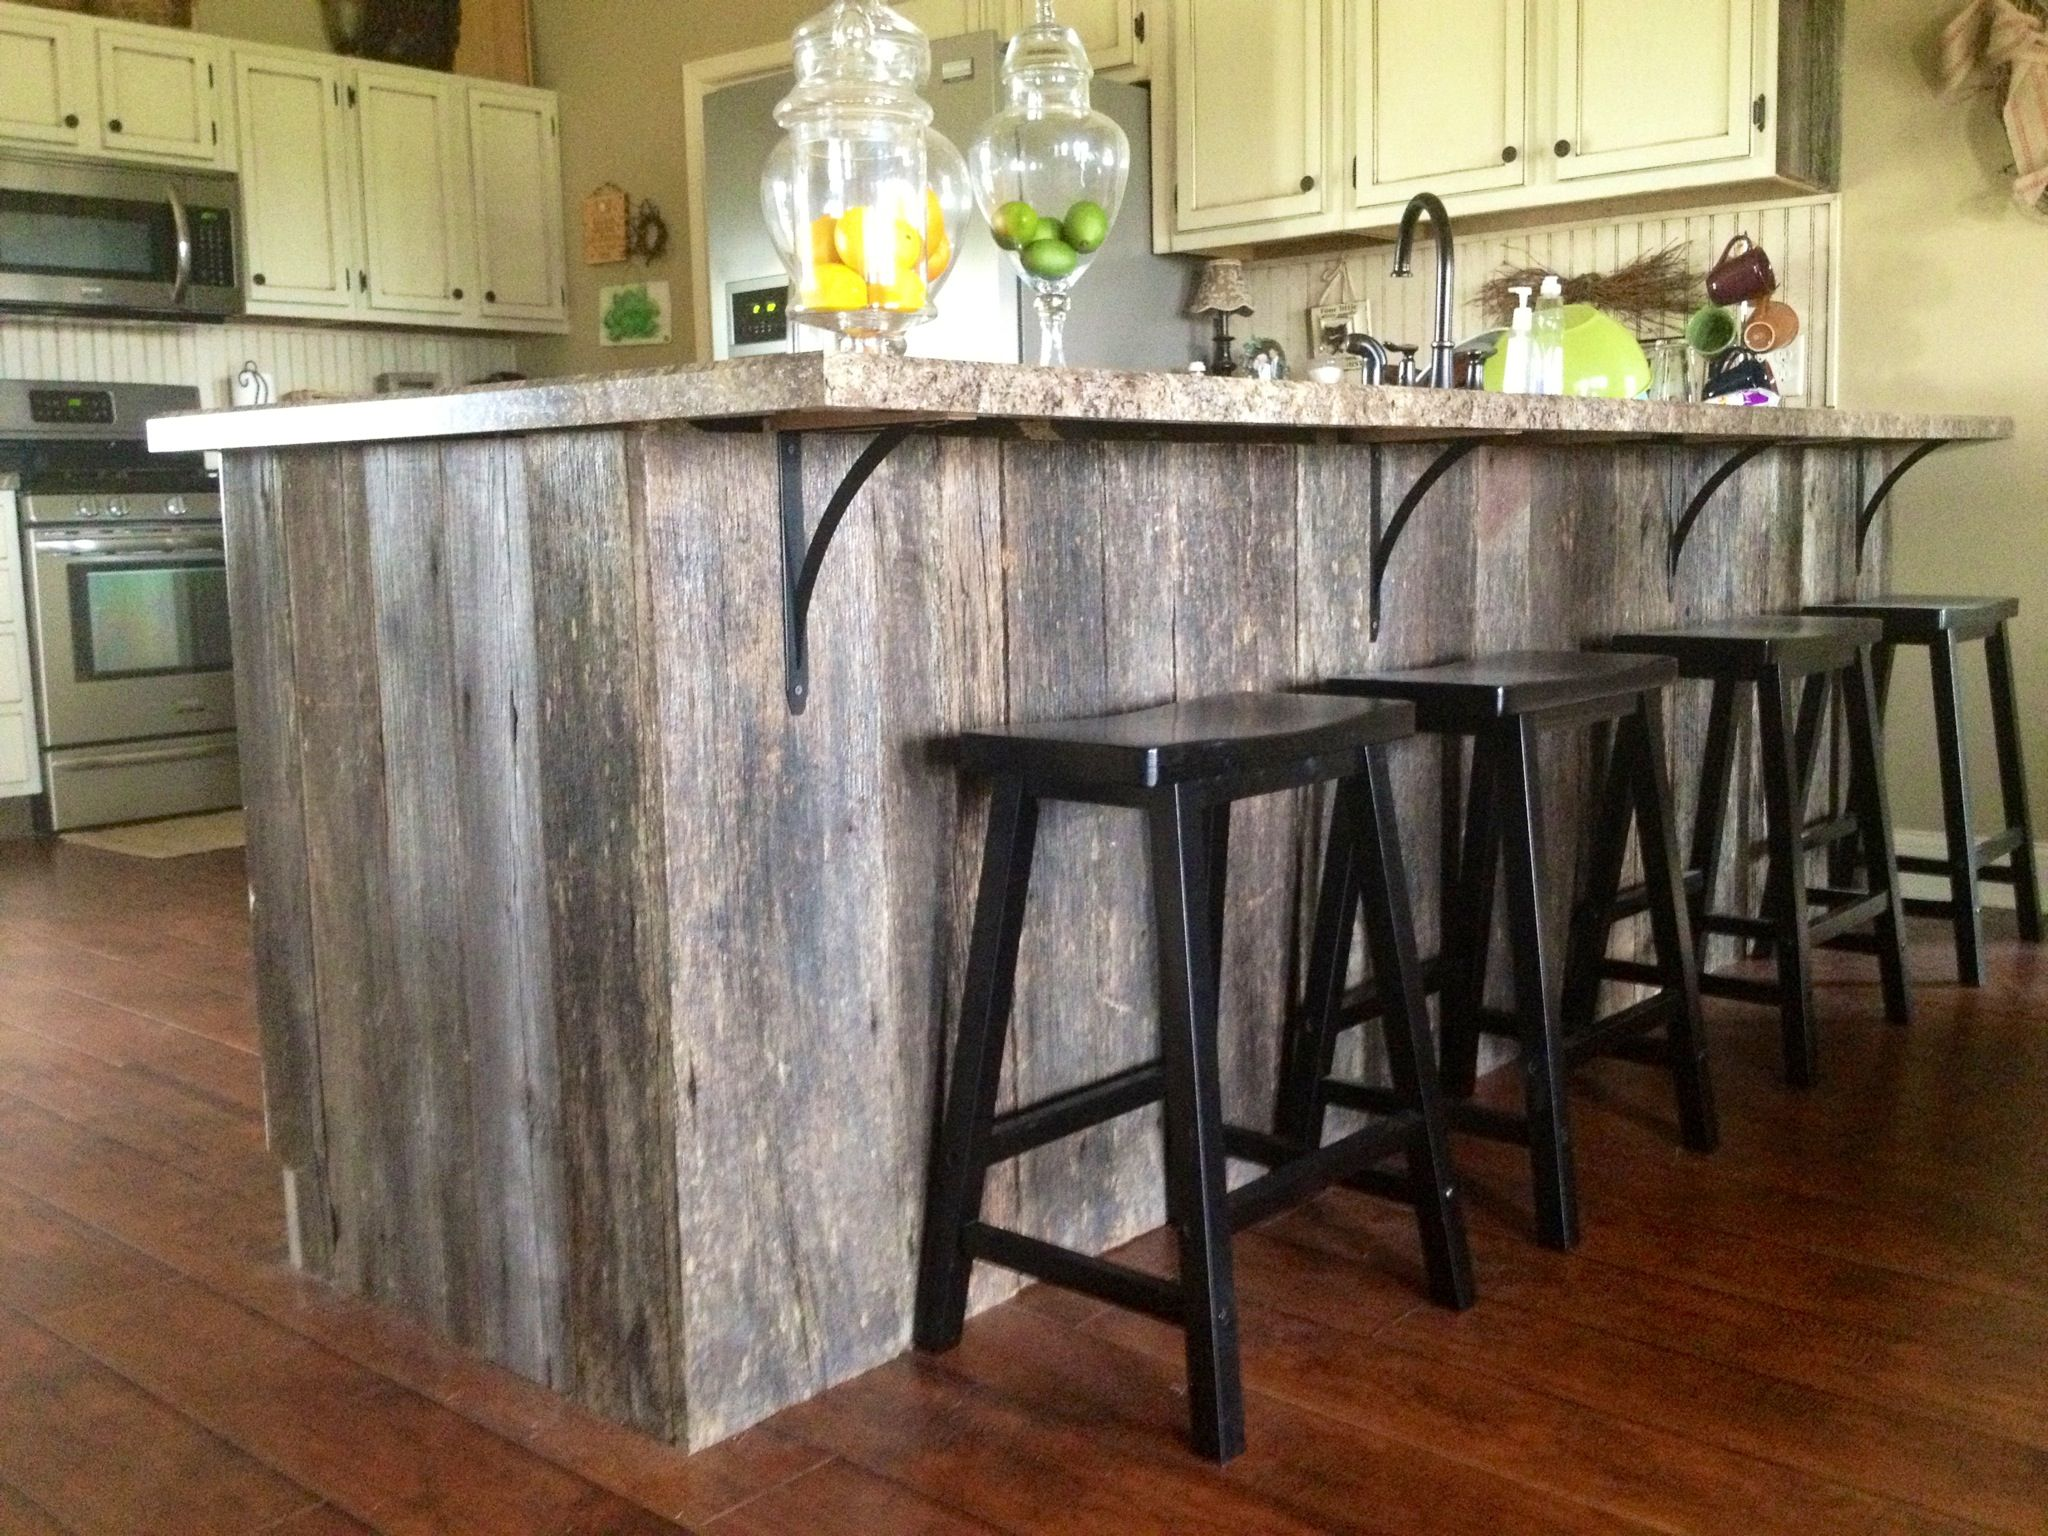 Reclaimed Barn Wood We Wrapped Our Island With Barn Wood To Give Our New Home An Old Feel Rustic Kitchen Wood Kitchen Island Barn Wood